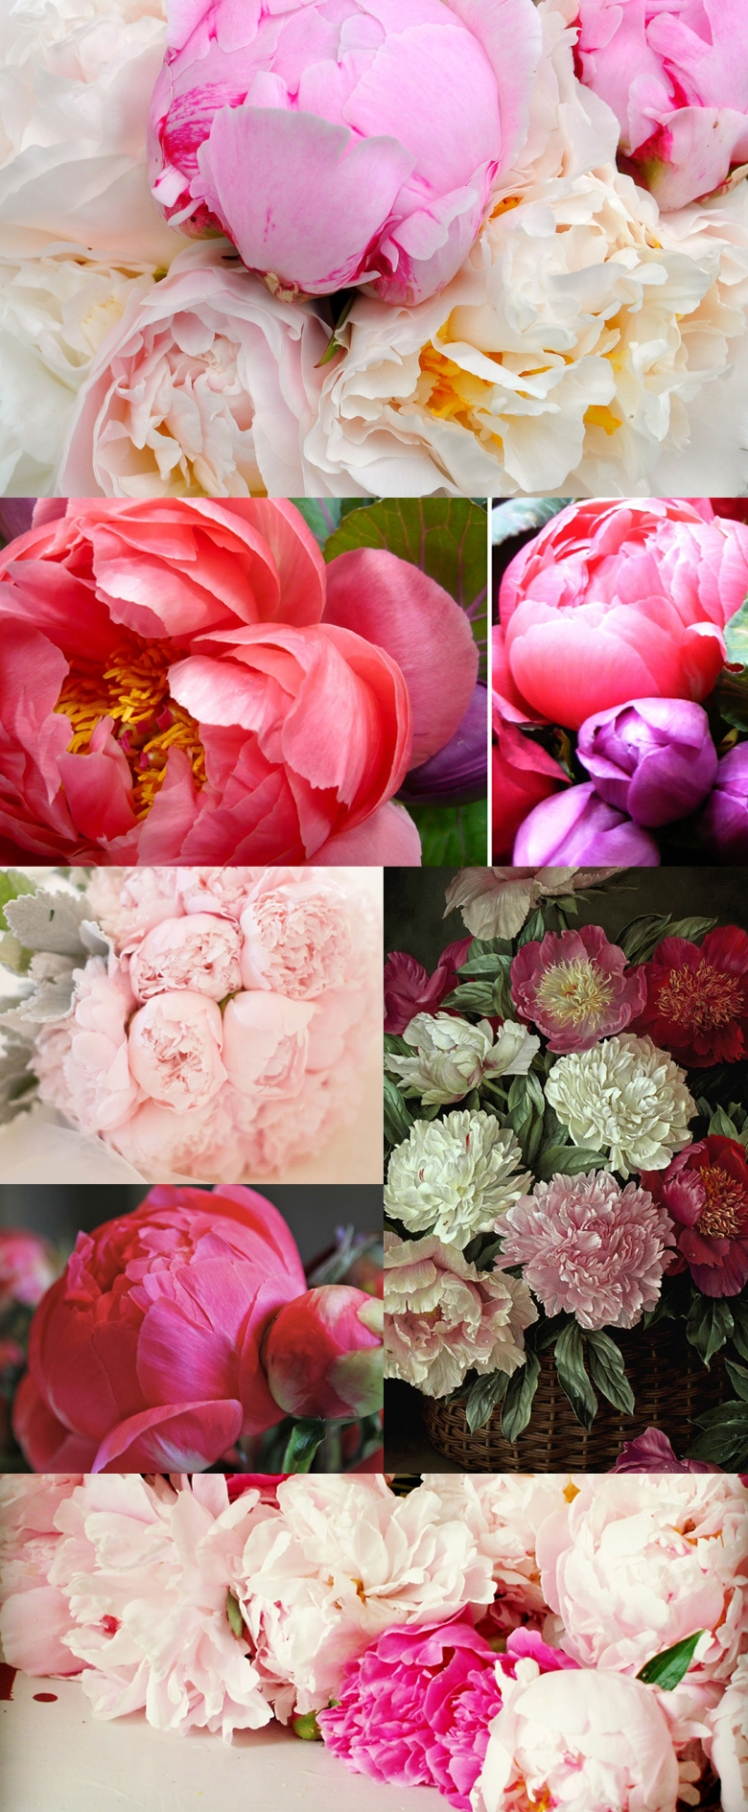 peonies, flowers, moodboard, styleboard, inspiration, pink flower, fashion, pretty, romantic